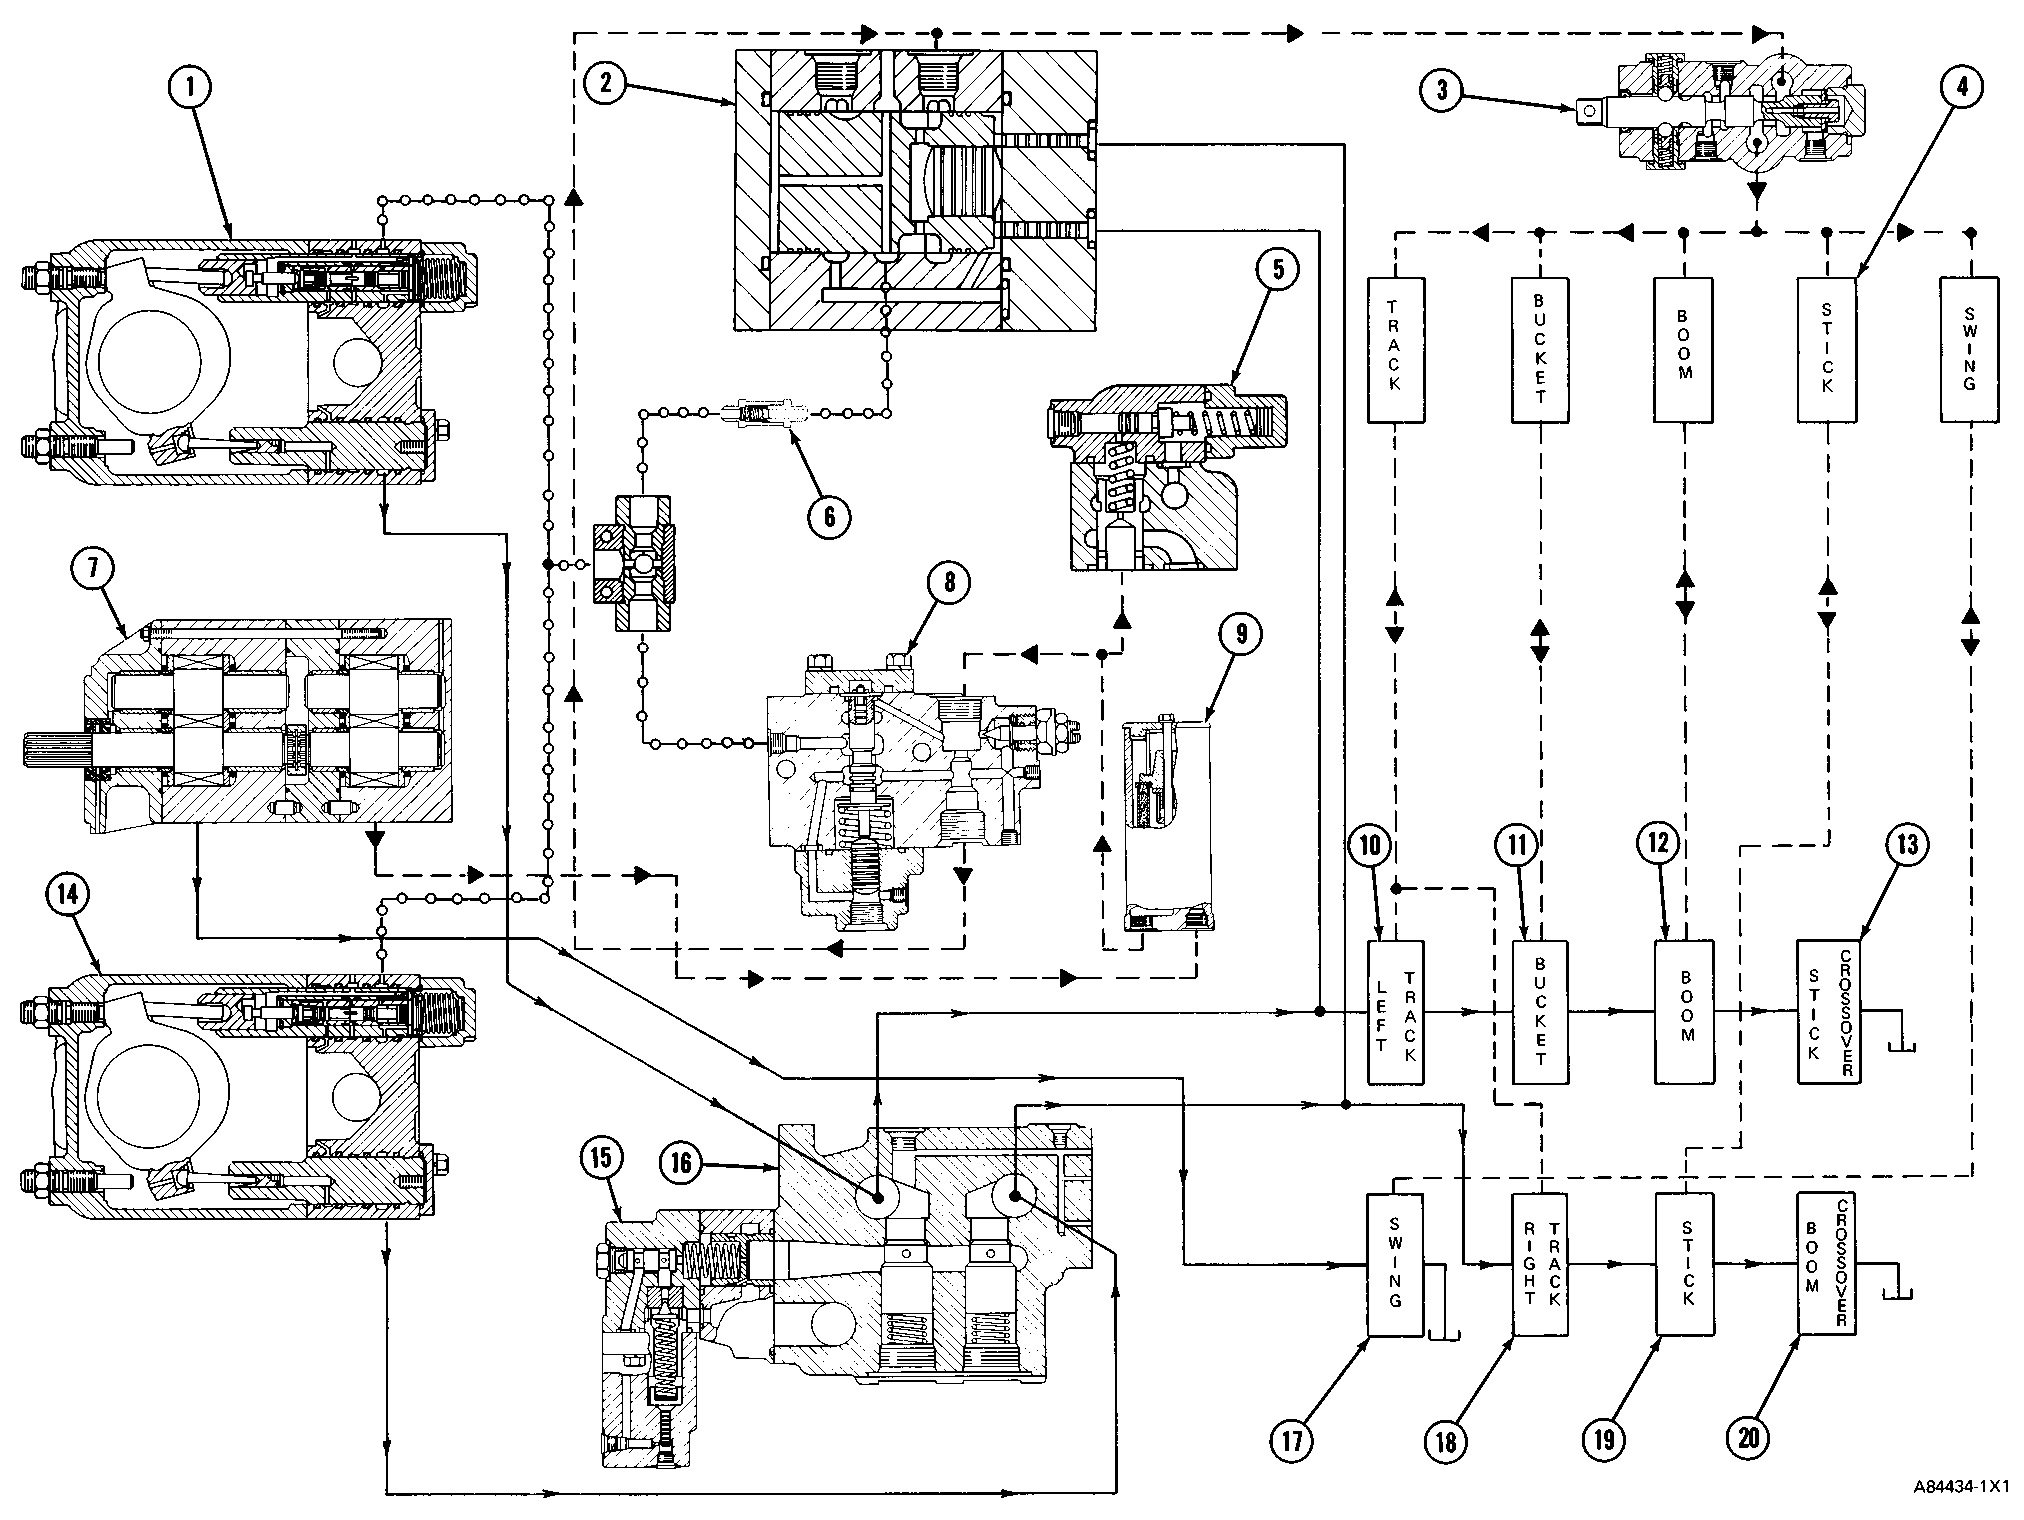 electrical schematic for cat 416 backhoe  diagram  auto